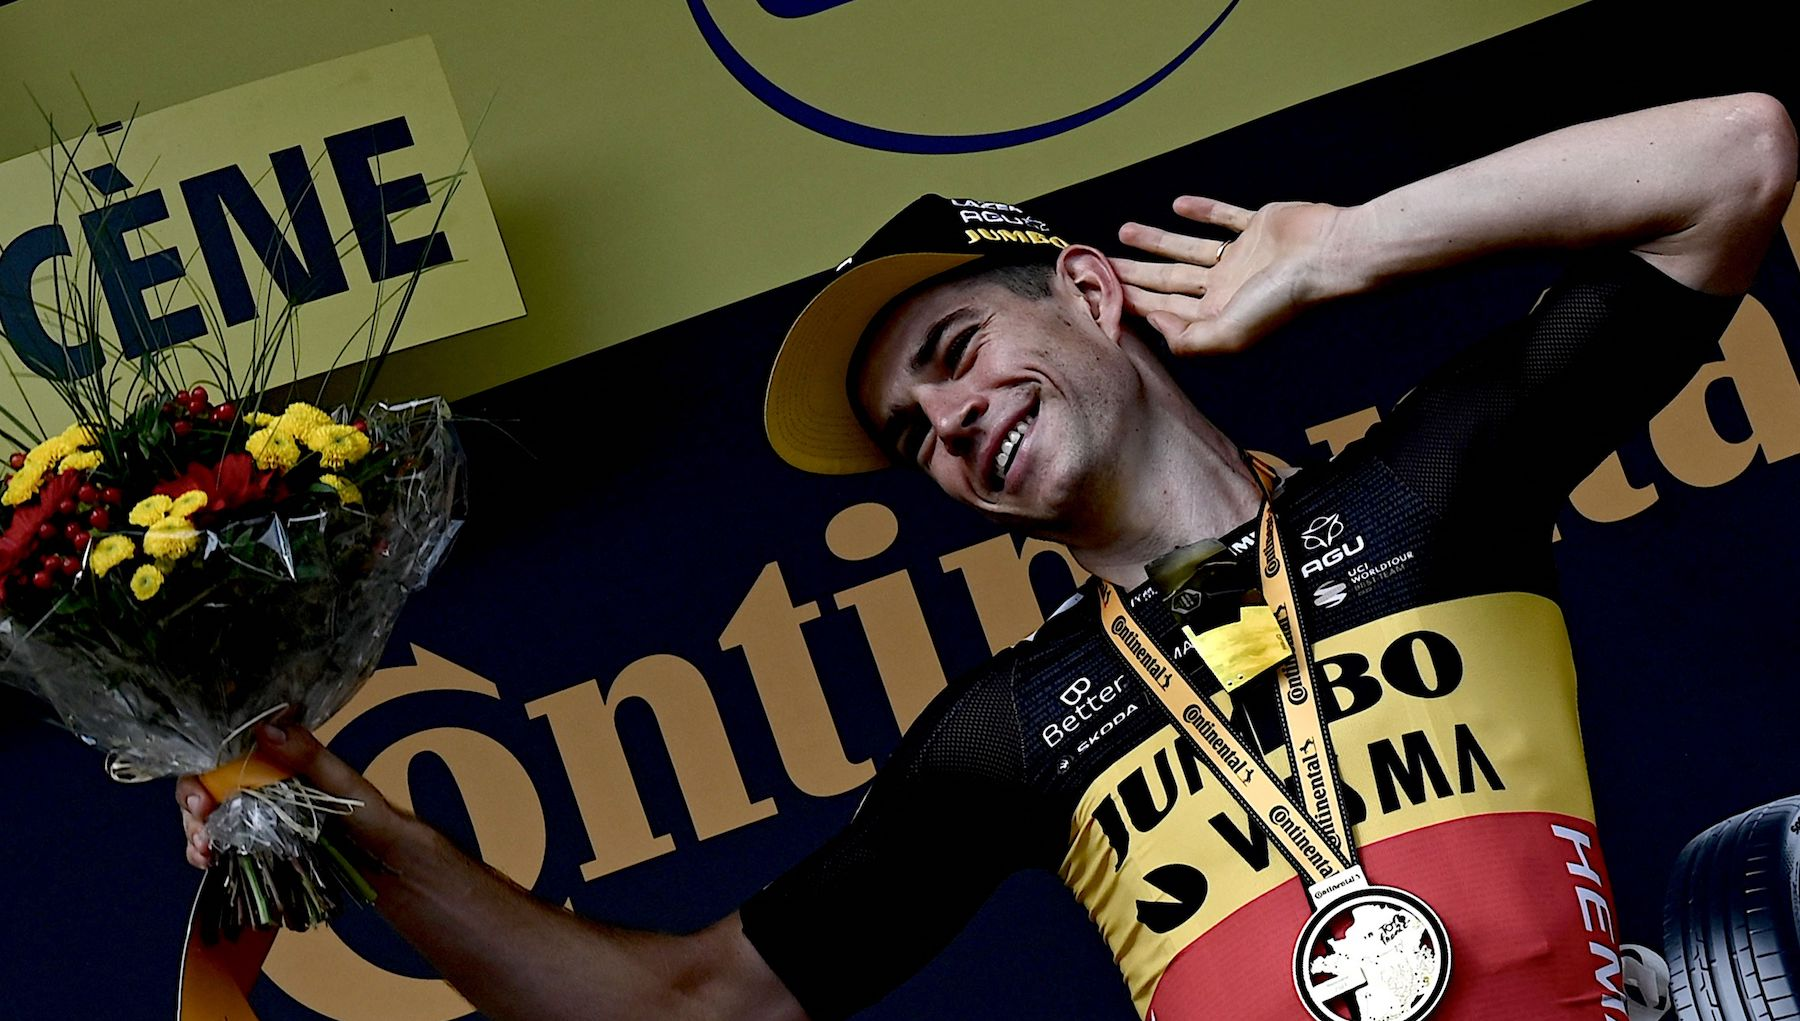 Wout van Aert takes stage 11 of the Tour de France